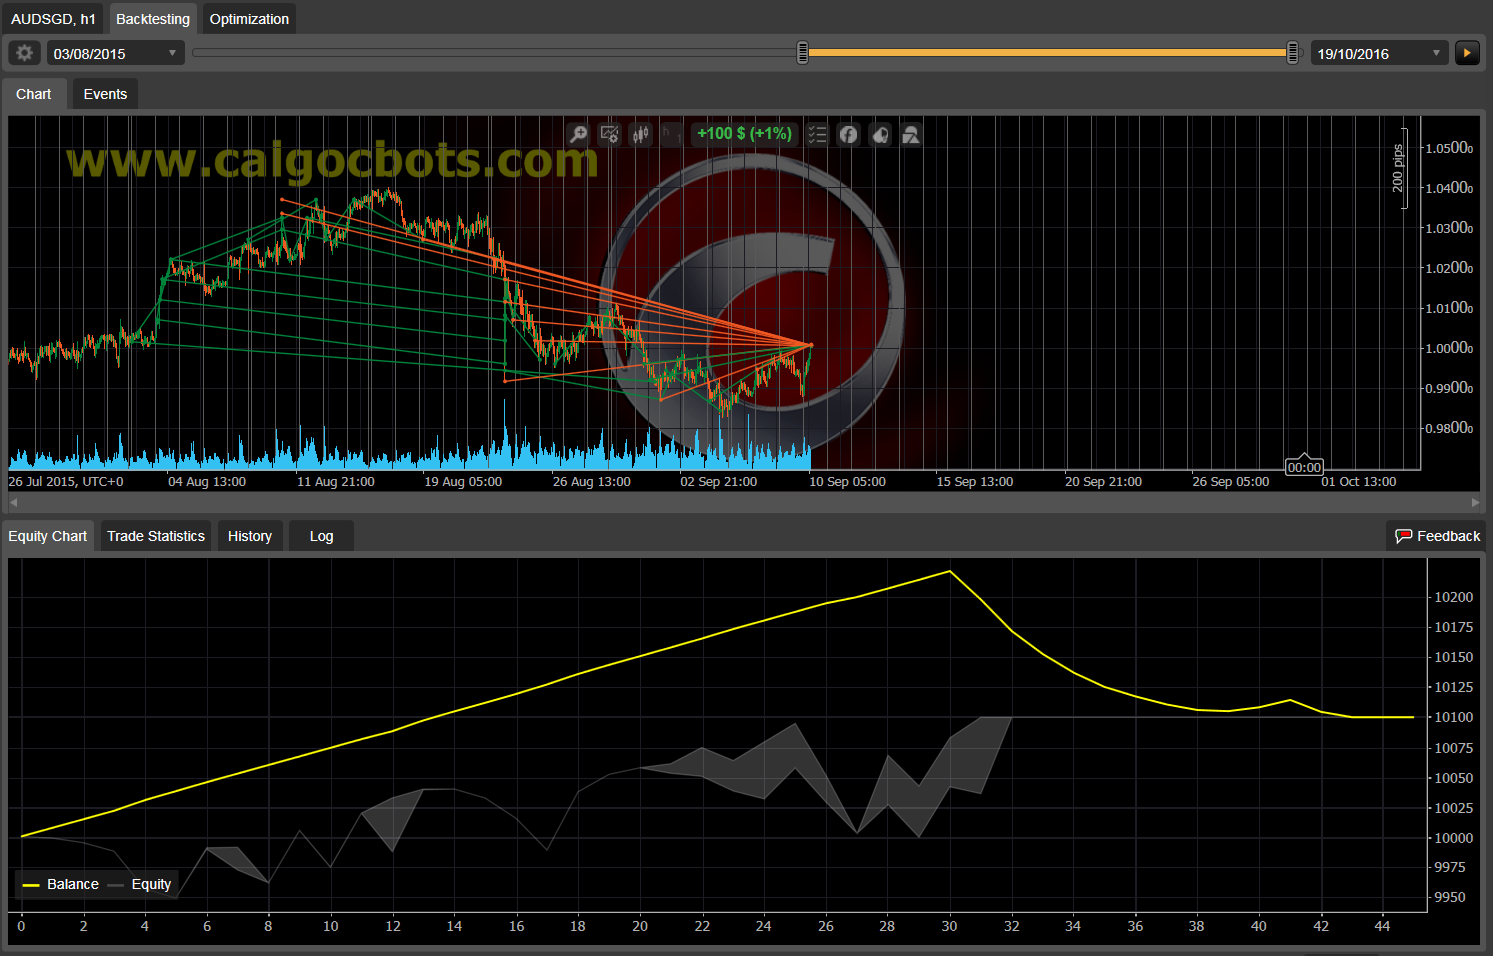 Dual Grid Hedge AUD SGD 1h cAlgo cBots cTrader 1k 100 50 100 - 01